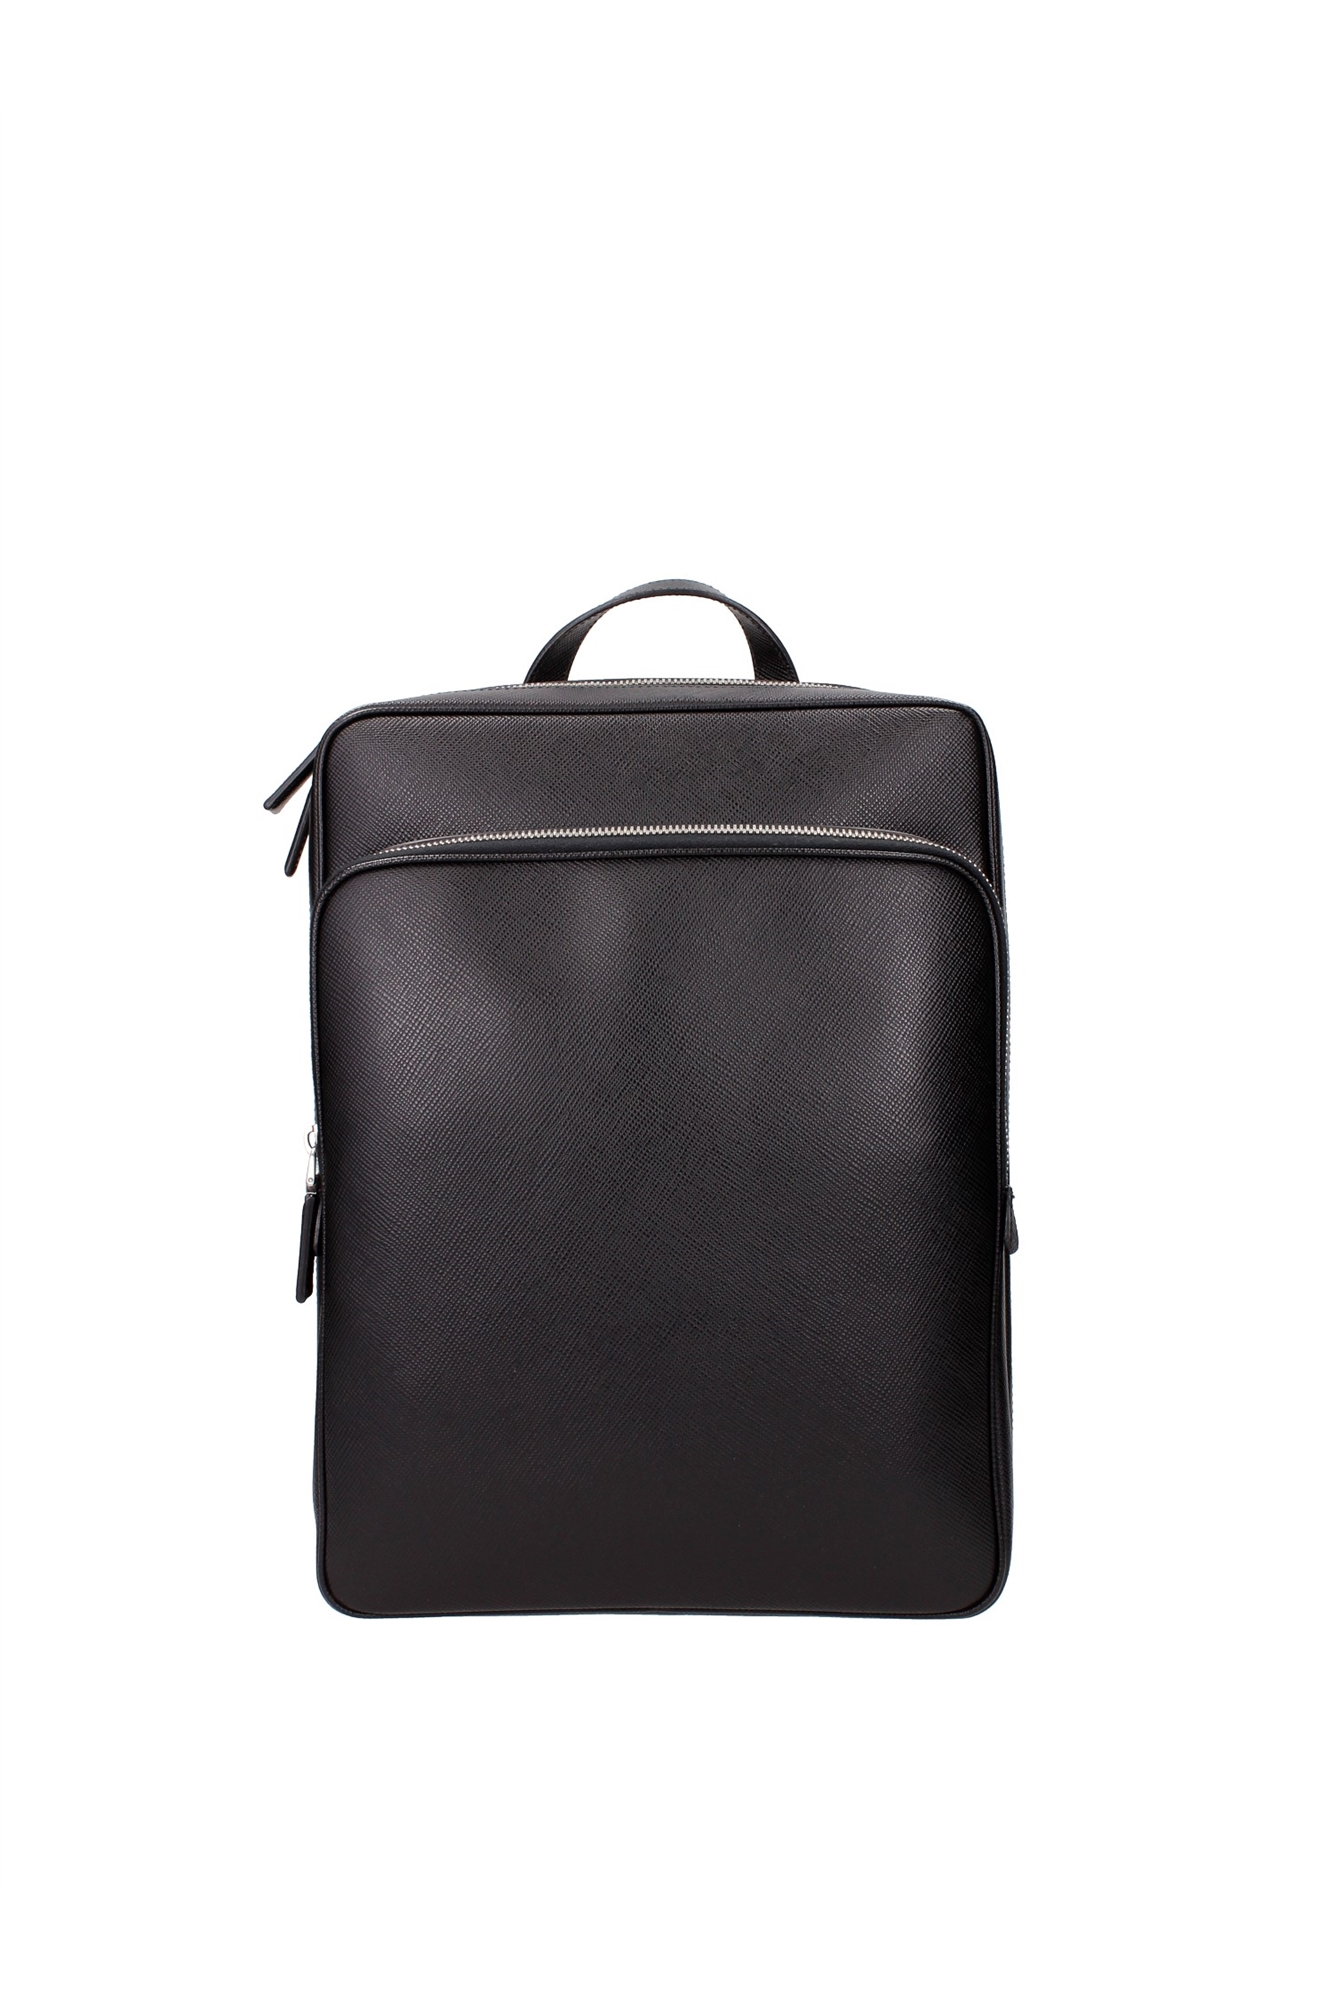 tasche rucksack prada herren leder schwarz vz0063nerosaffiano ebay. Black Bedroom Furniture Sets. Home Design Ideas